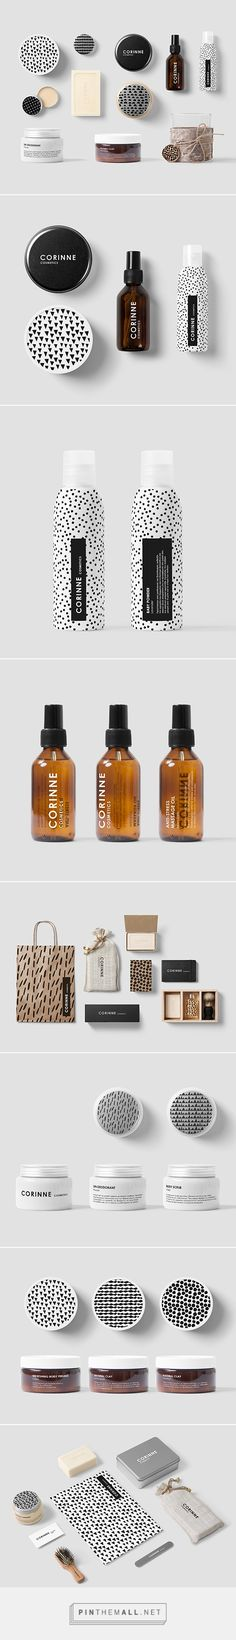 Corinne Designed by Anna Trympali |  Lovely Package